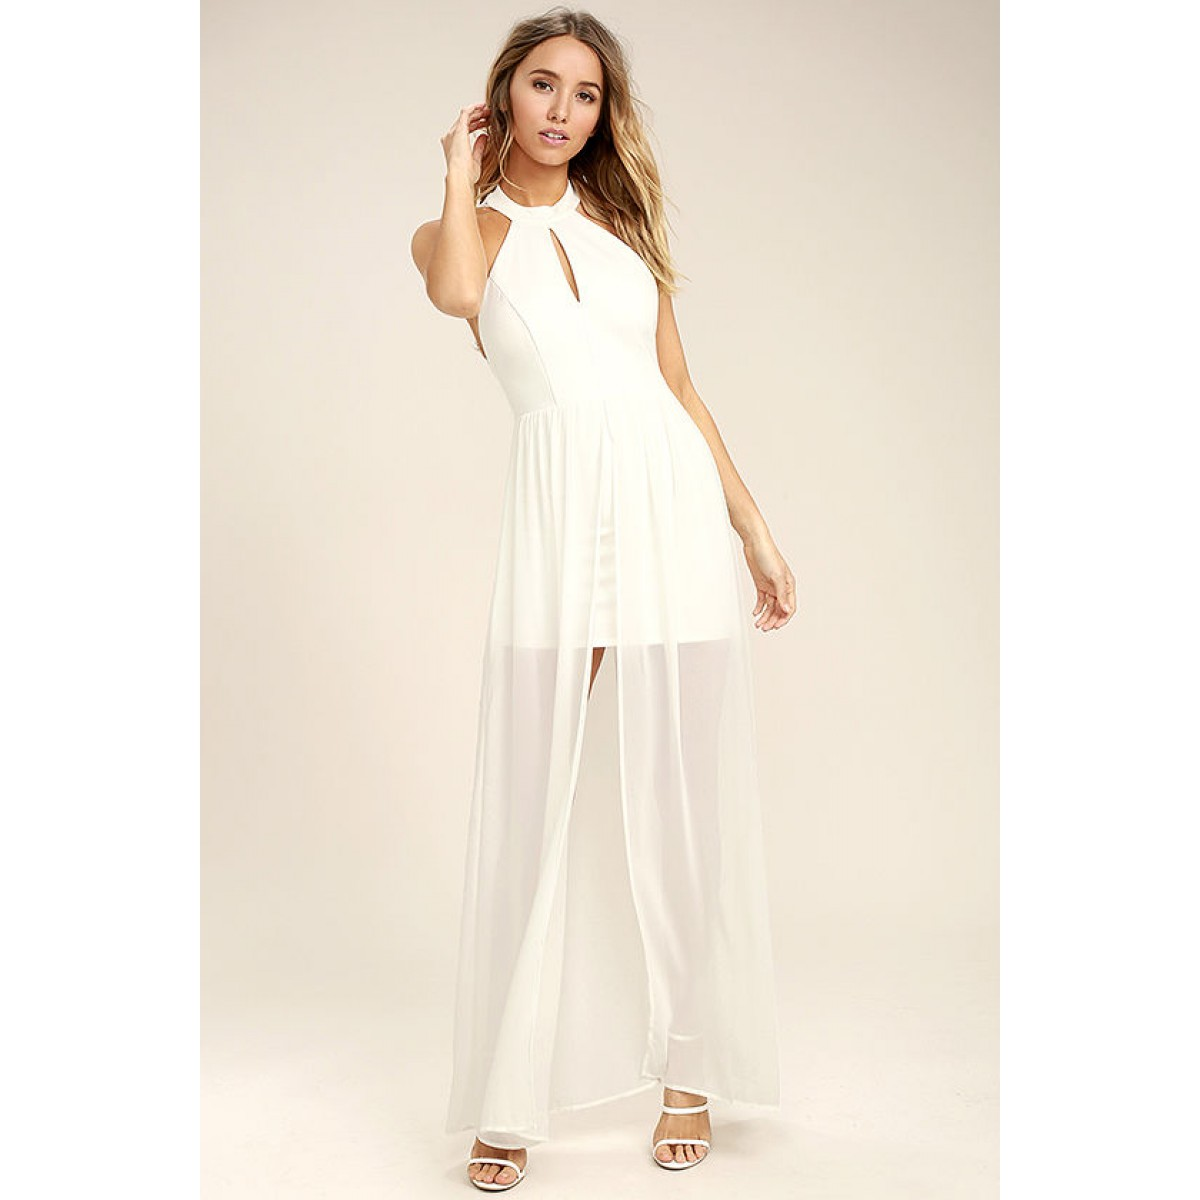 b0ae488b8b9 My Beloved White Lace Maxi Dress. Be the first to review this product